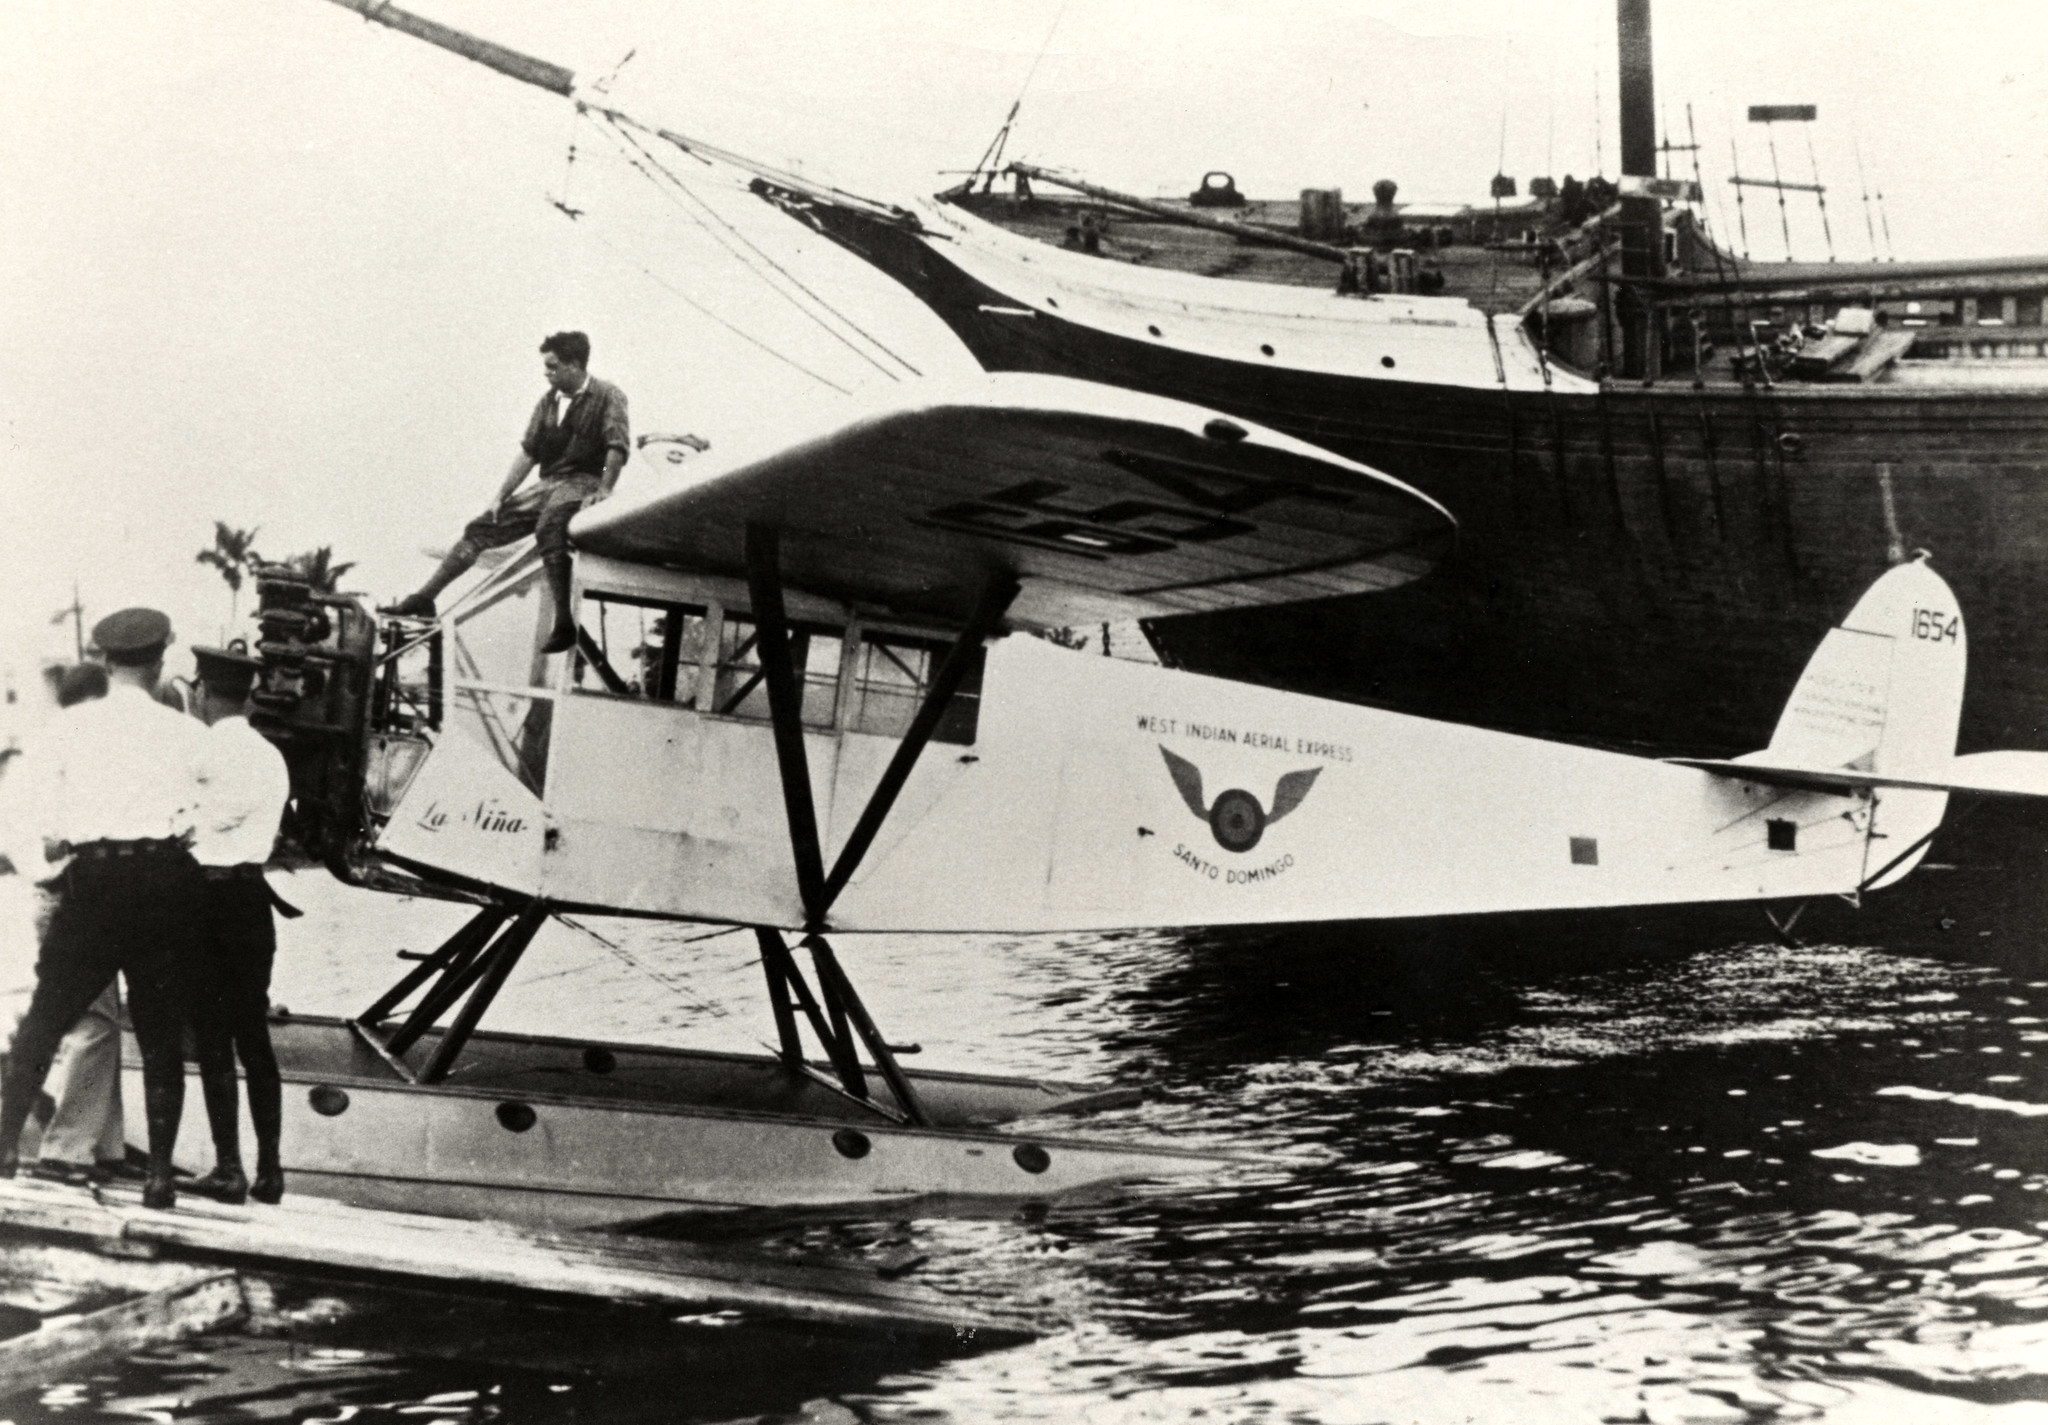 Cy Caldwell sitting on the plane La Nina before making the first flight from Key West to Havana for Pan American Airways on October 19, 1927. Monroe County Library Collection.